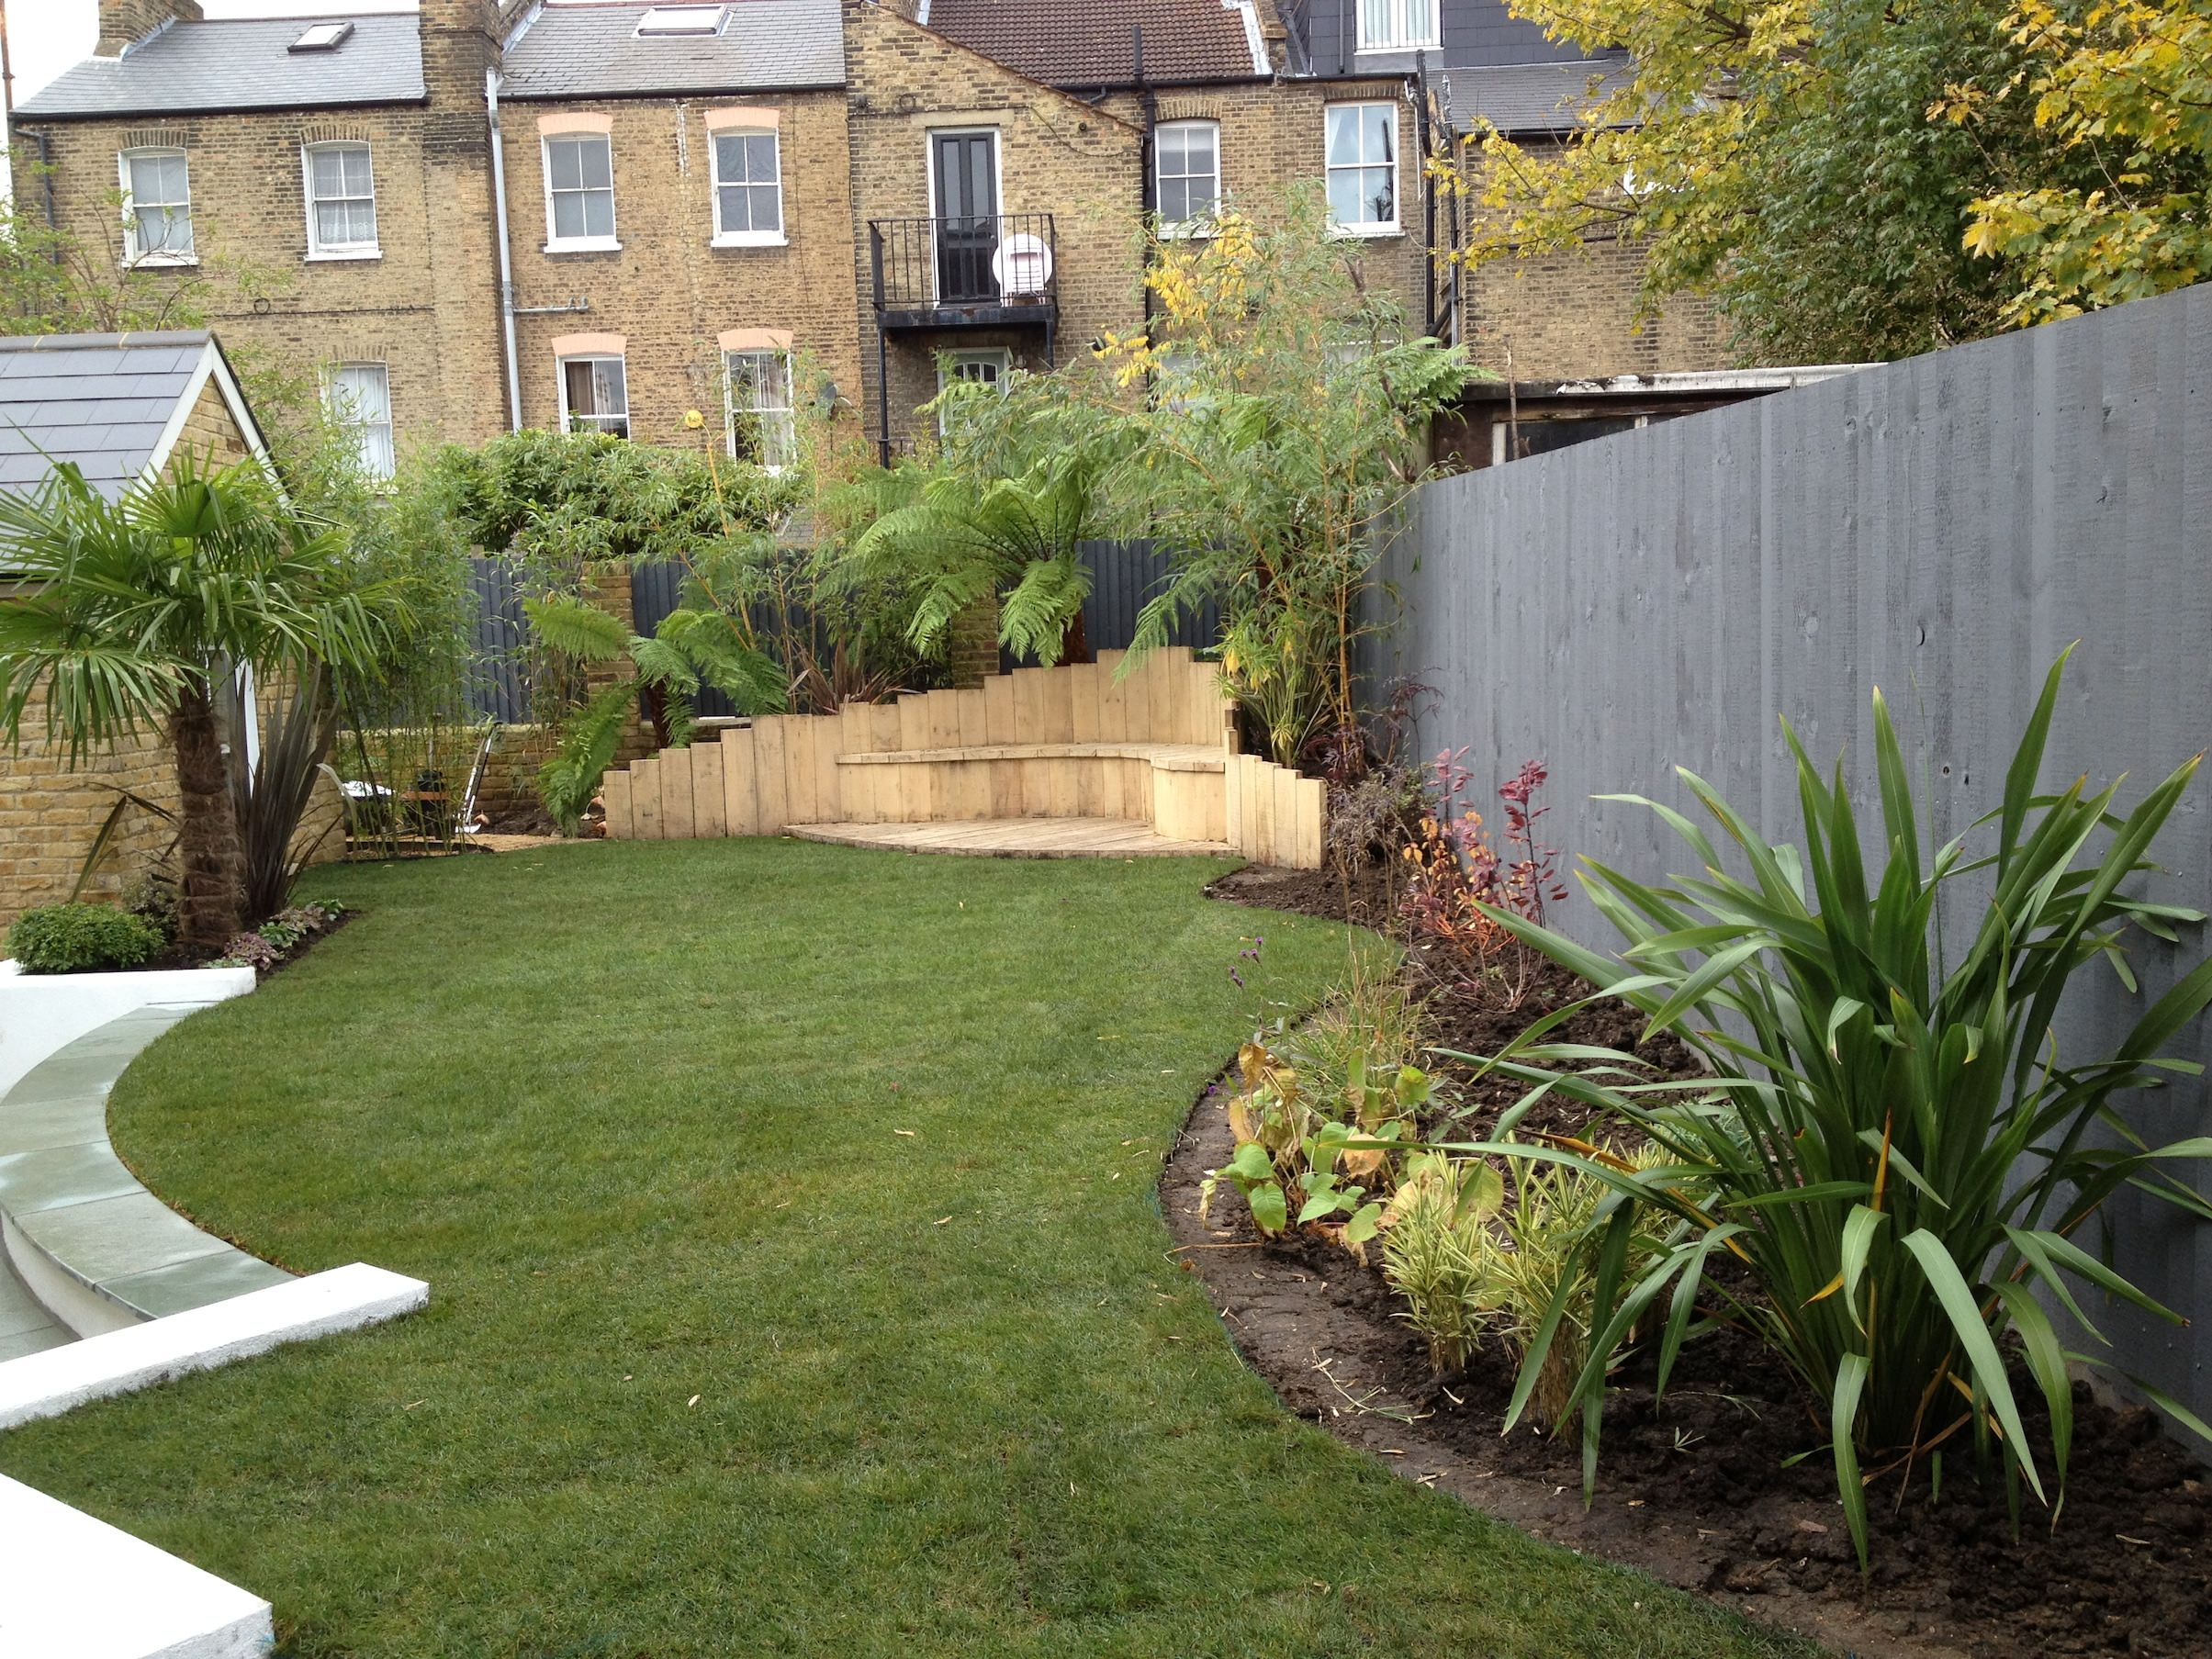 Low maintenance garden designs garden club london for Gardening and maintenance